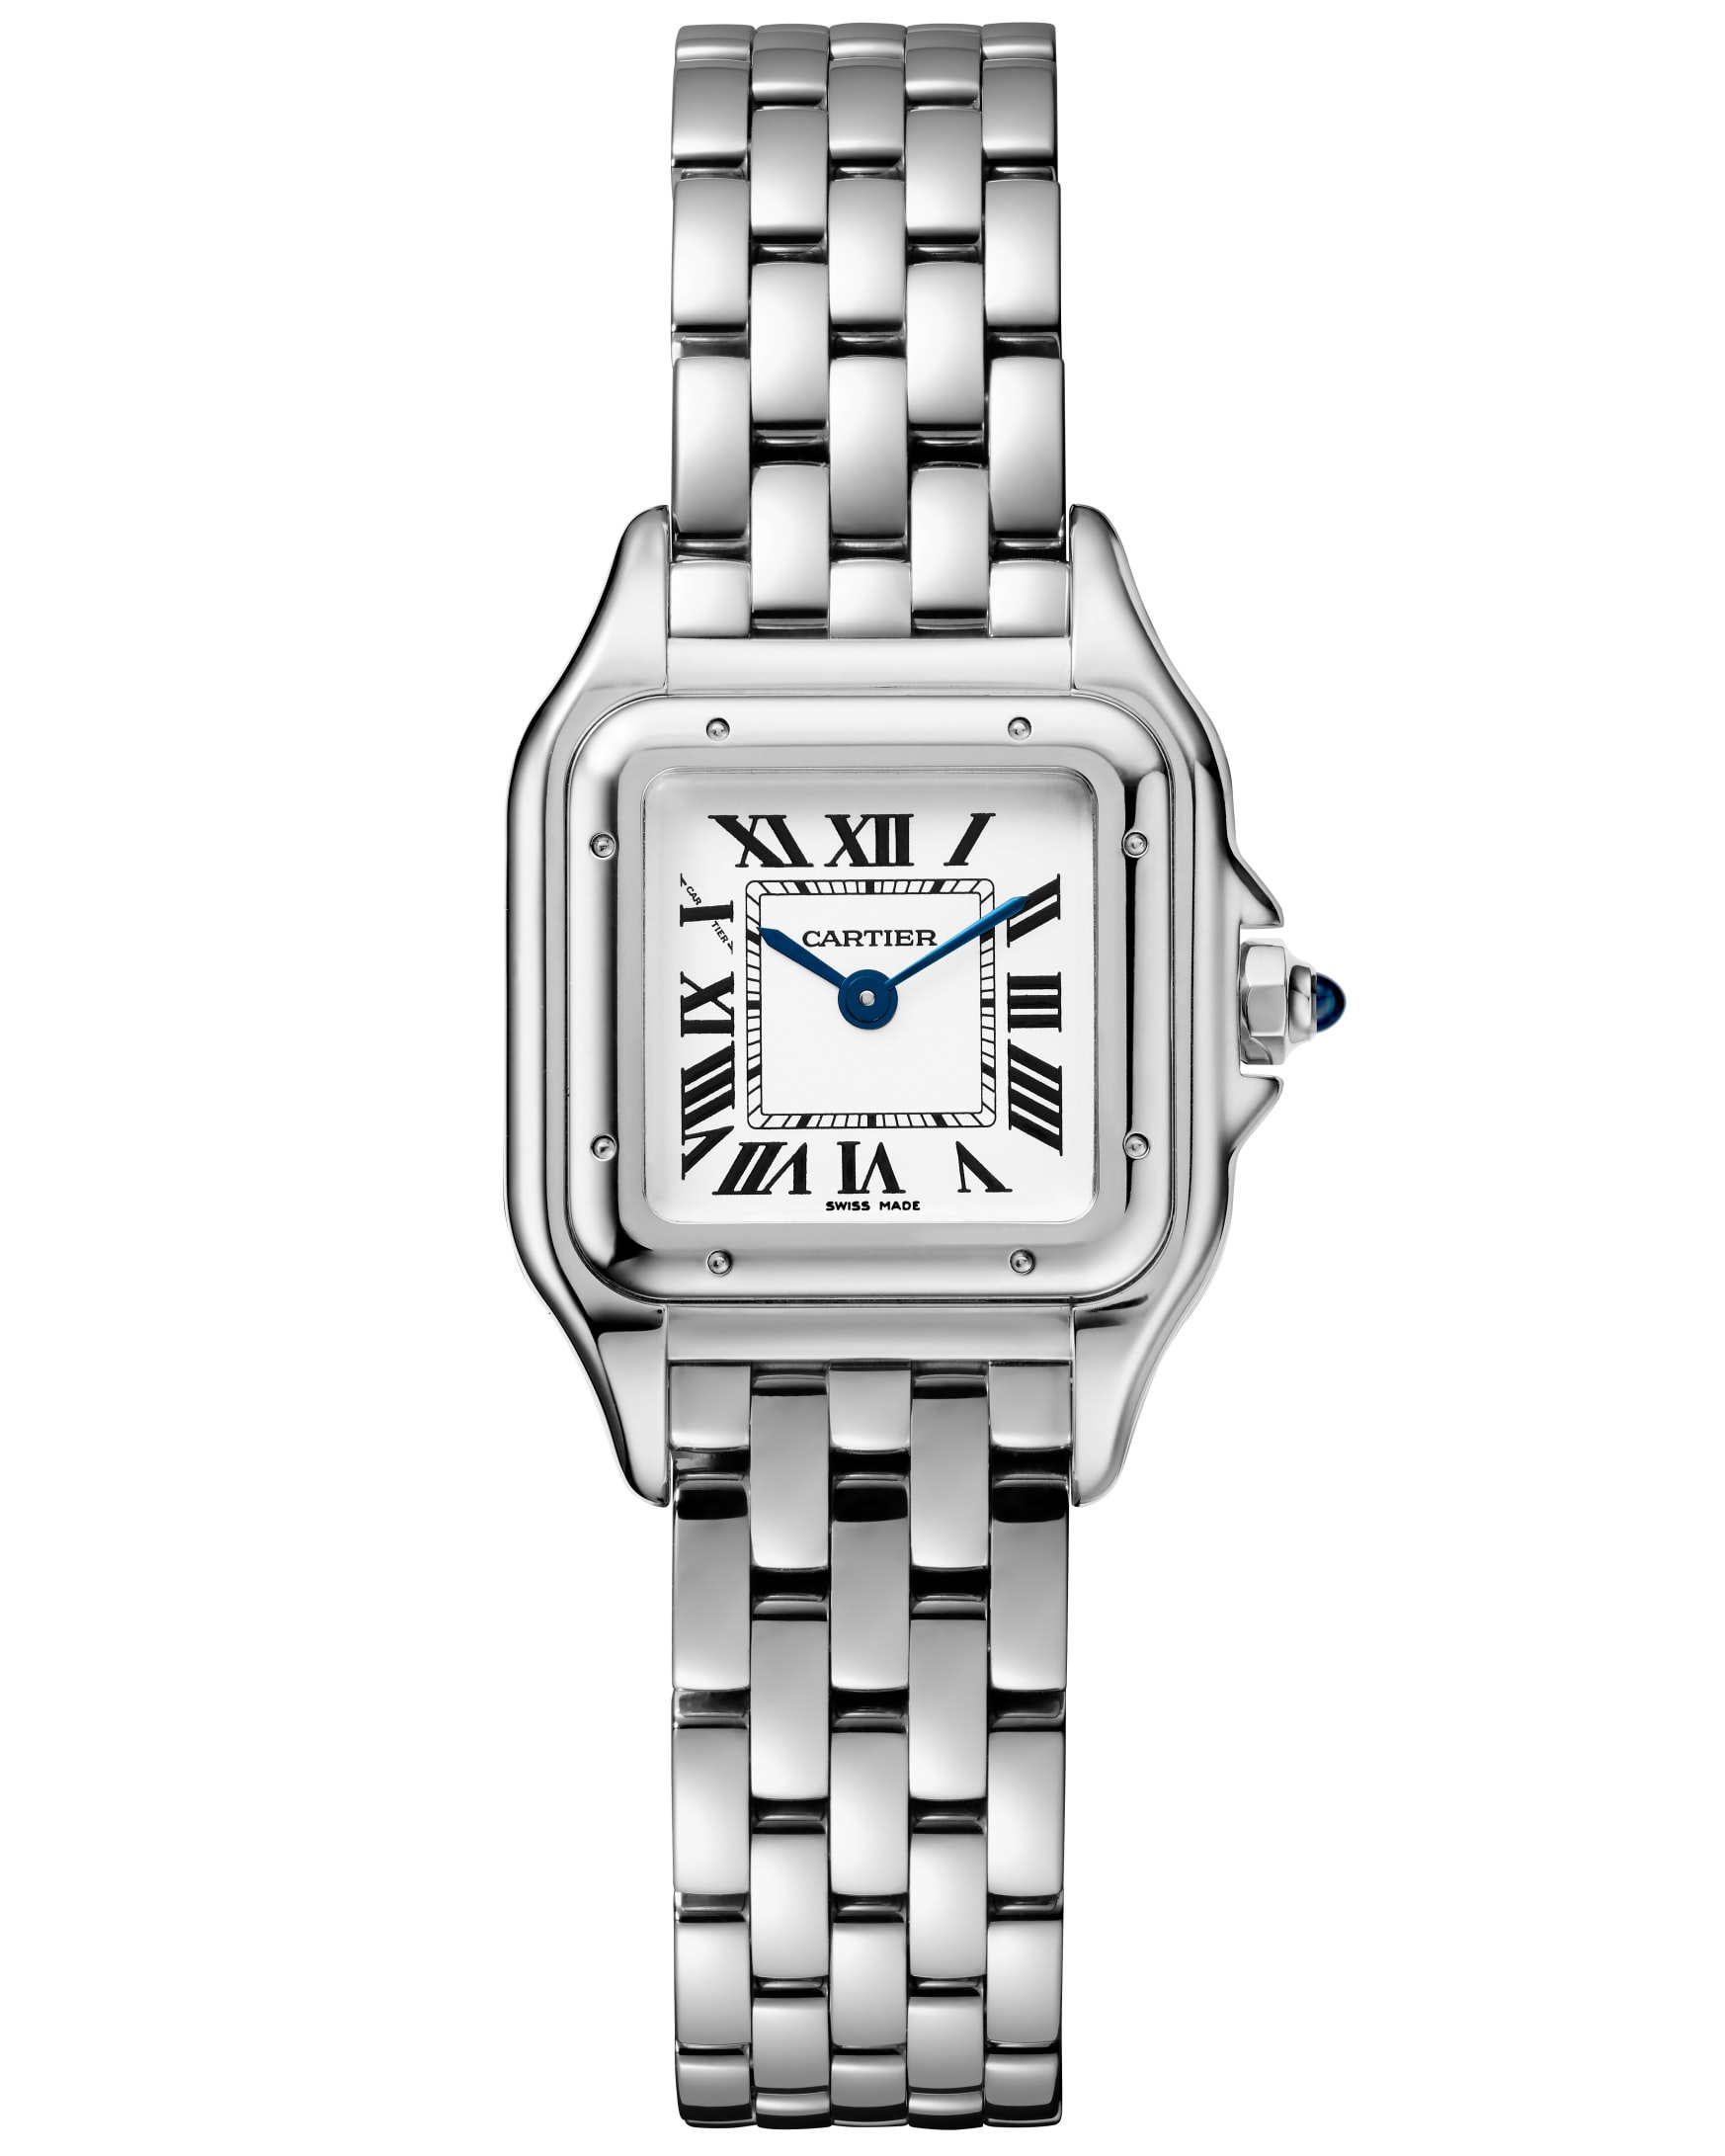 Small model, stainless steel.  Introducing: The Cartier Panthère De Cartier Collection, Re-Introduced For 2017 Introducing: The Cartier Panthère De Cartier Collection, Re-Introduced For 2017 18B PANTHERE DE CARTIER WSPN0006